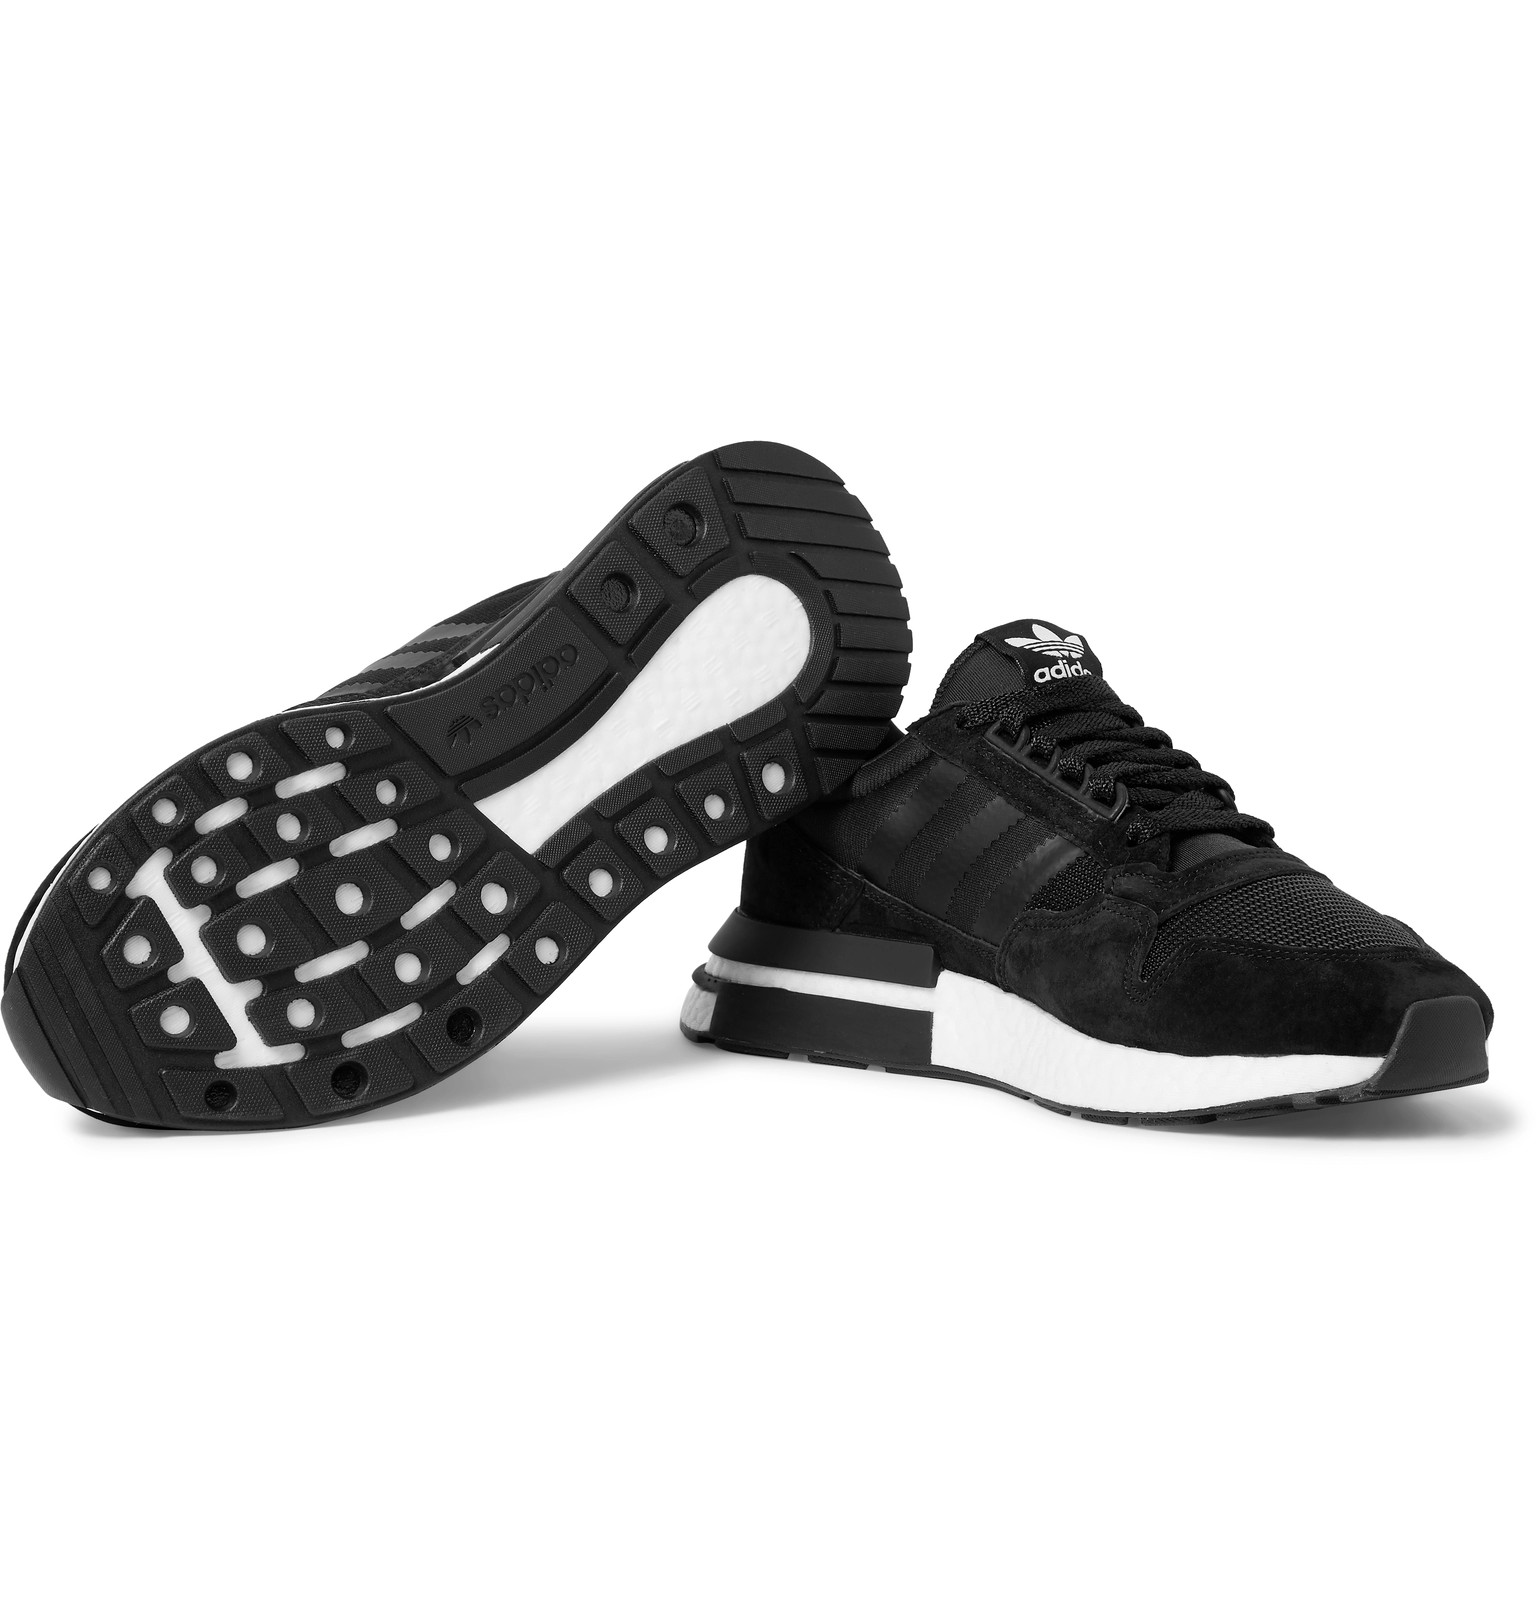 3c71c44efae47 Leather And Adidas Sneakers Suede Zx Mesh 500 Originals Rm rnRxY0wqAR